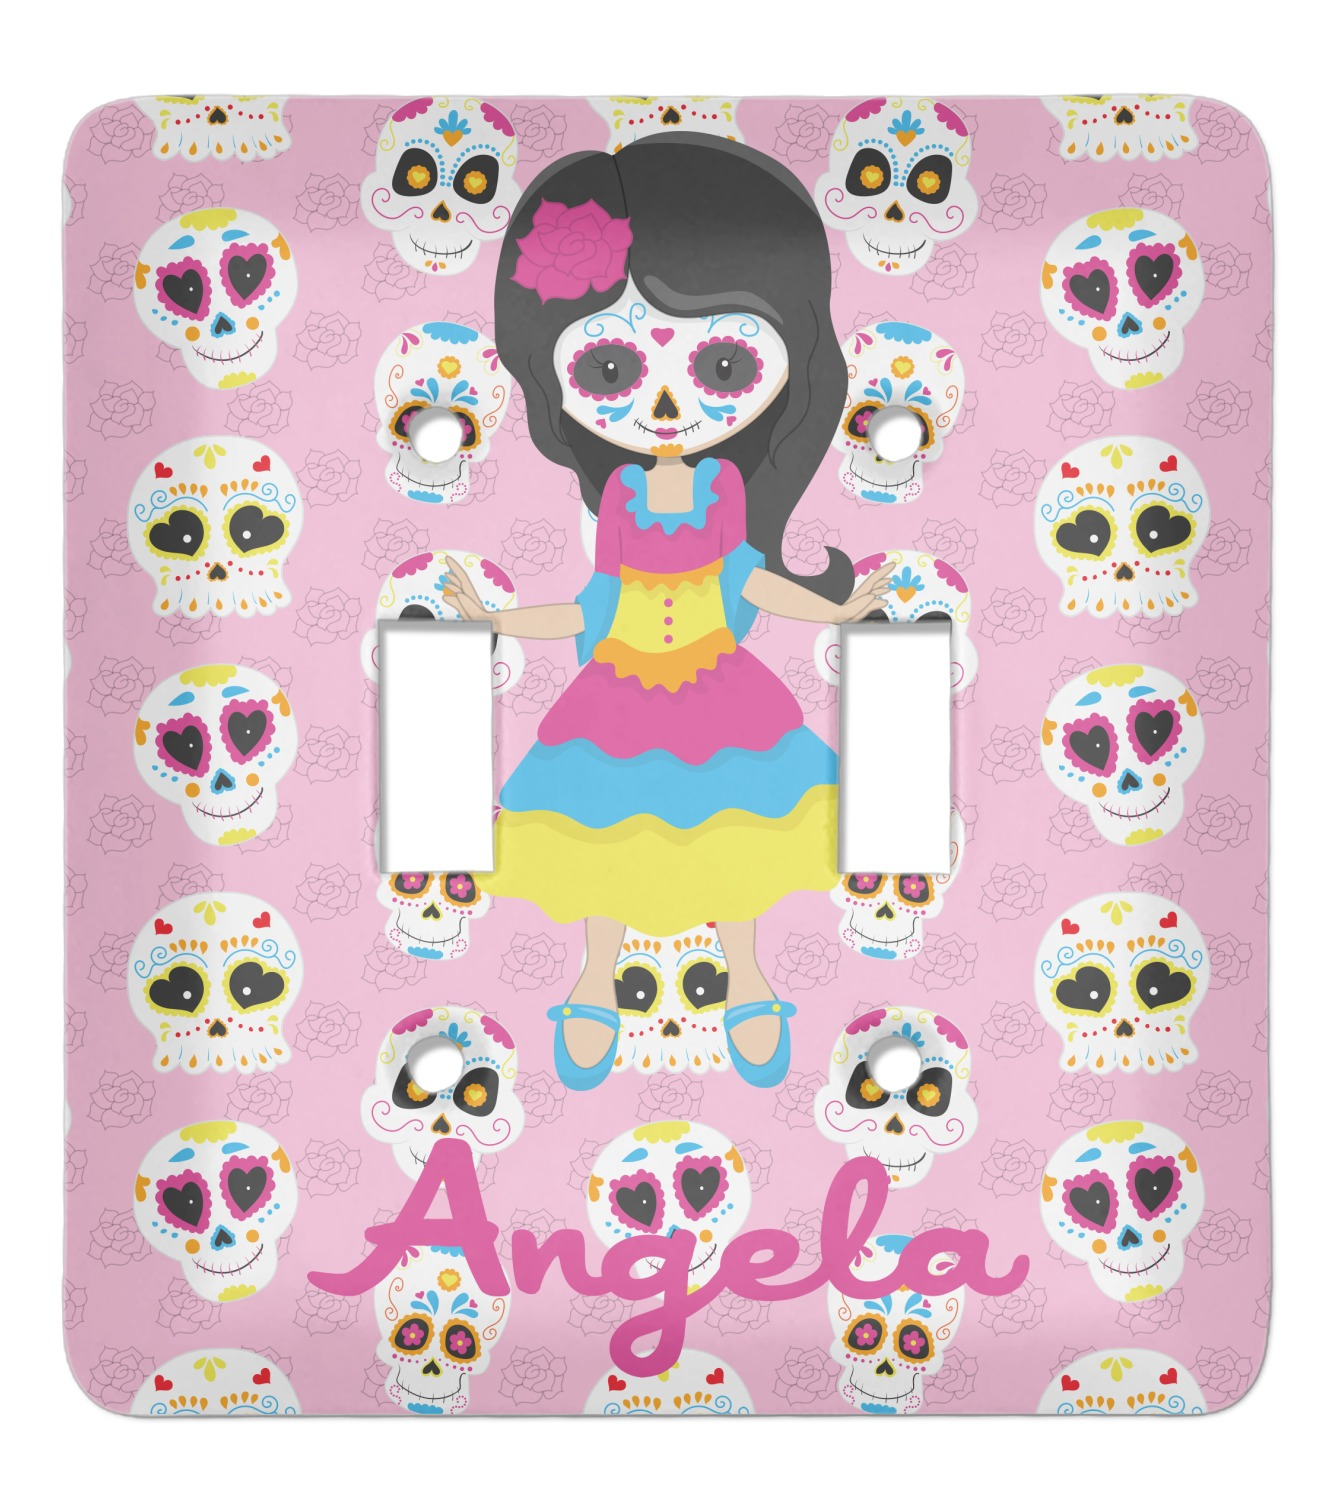 Kids Sugar Skulls Light Switch Cover 2 Toggle Plate Personalized